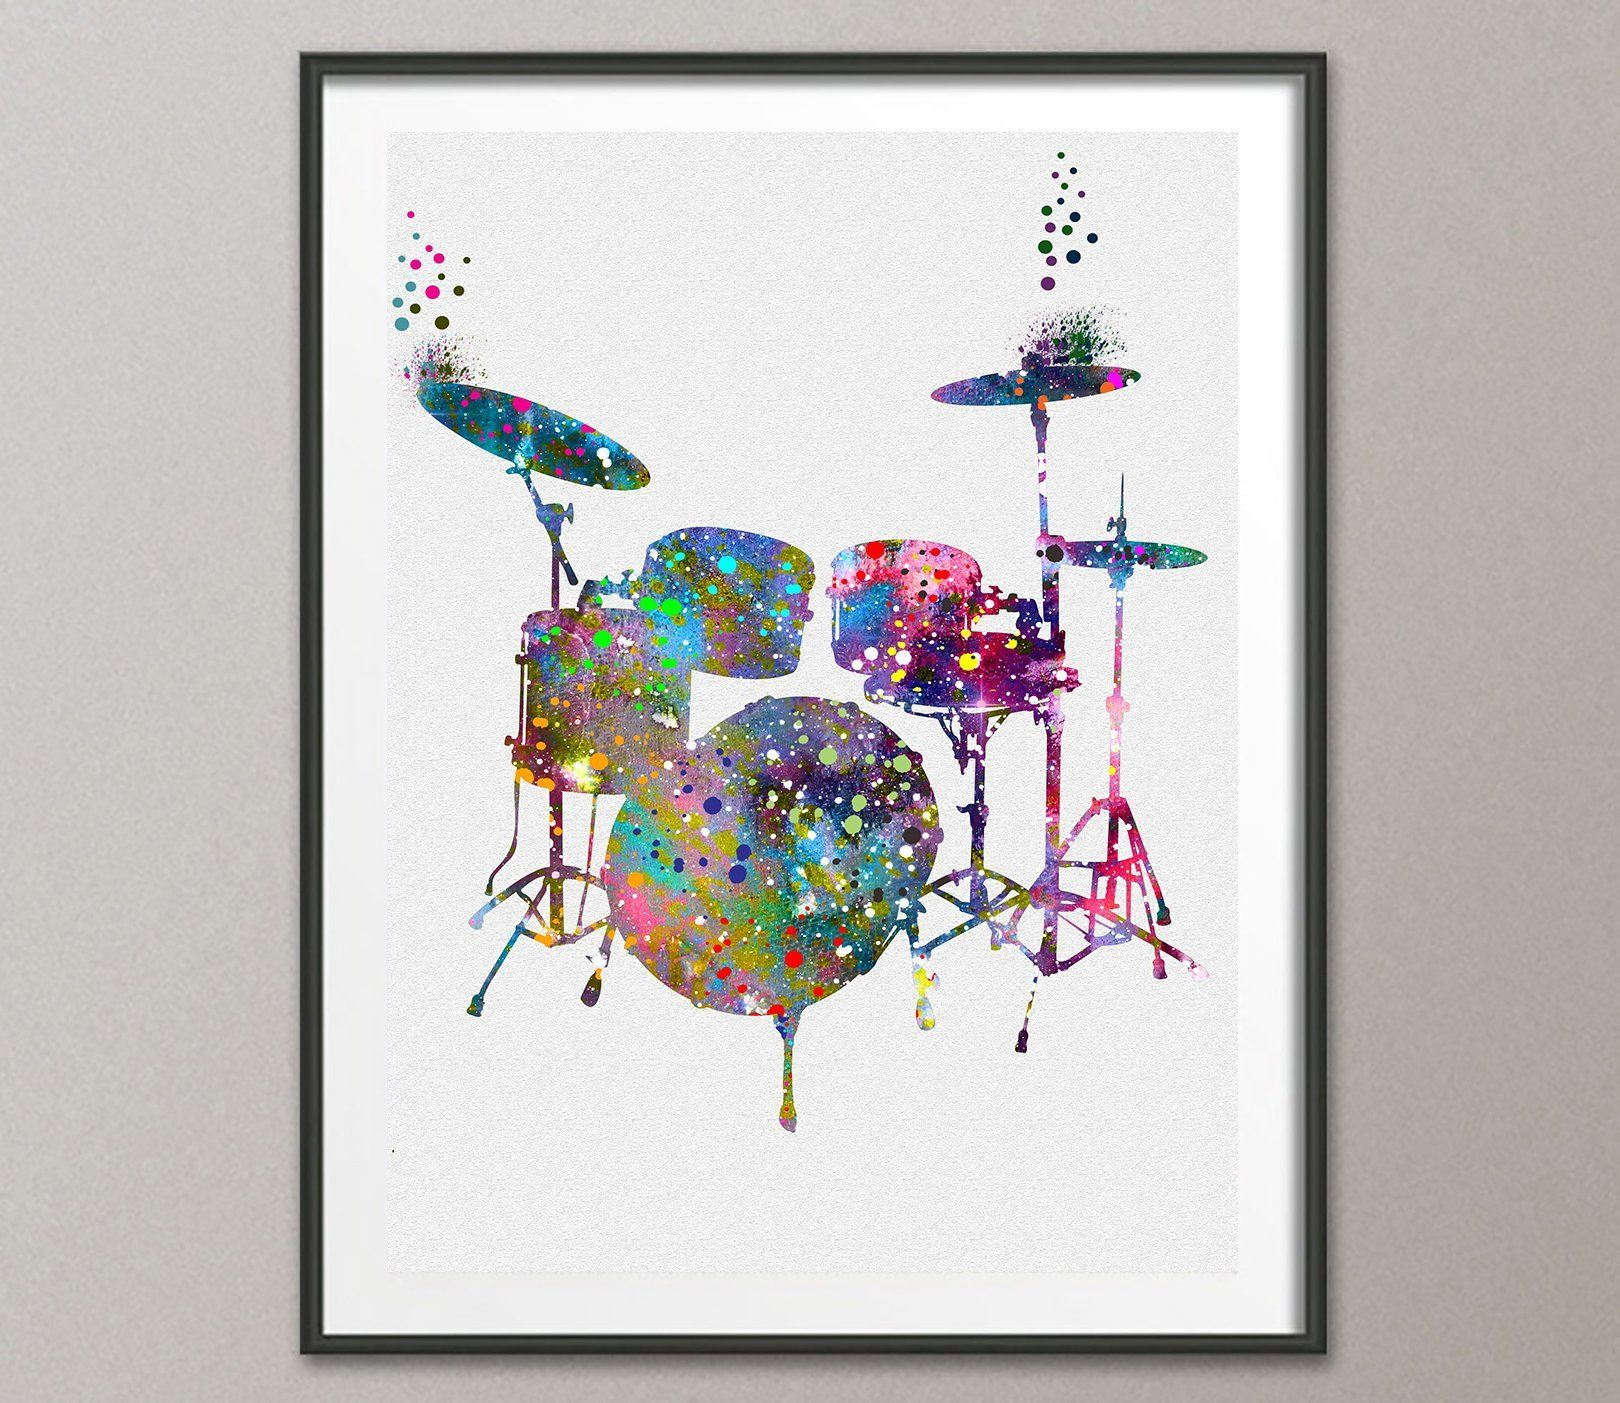 Drums Watercolor Poster Art Print Wall Decor Artworks Dining Room Hanging Kitchen